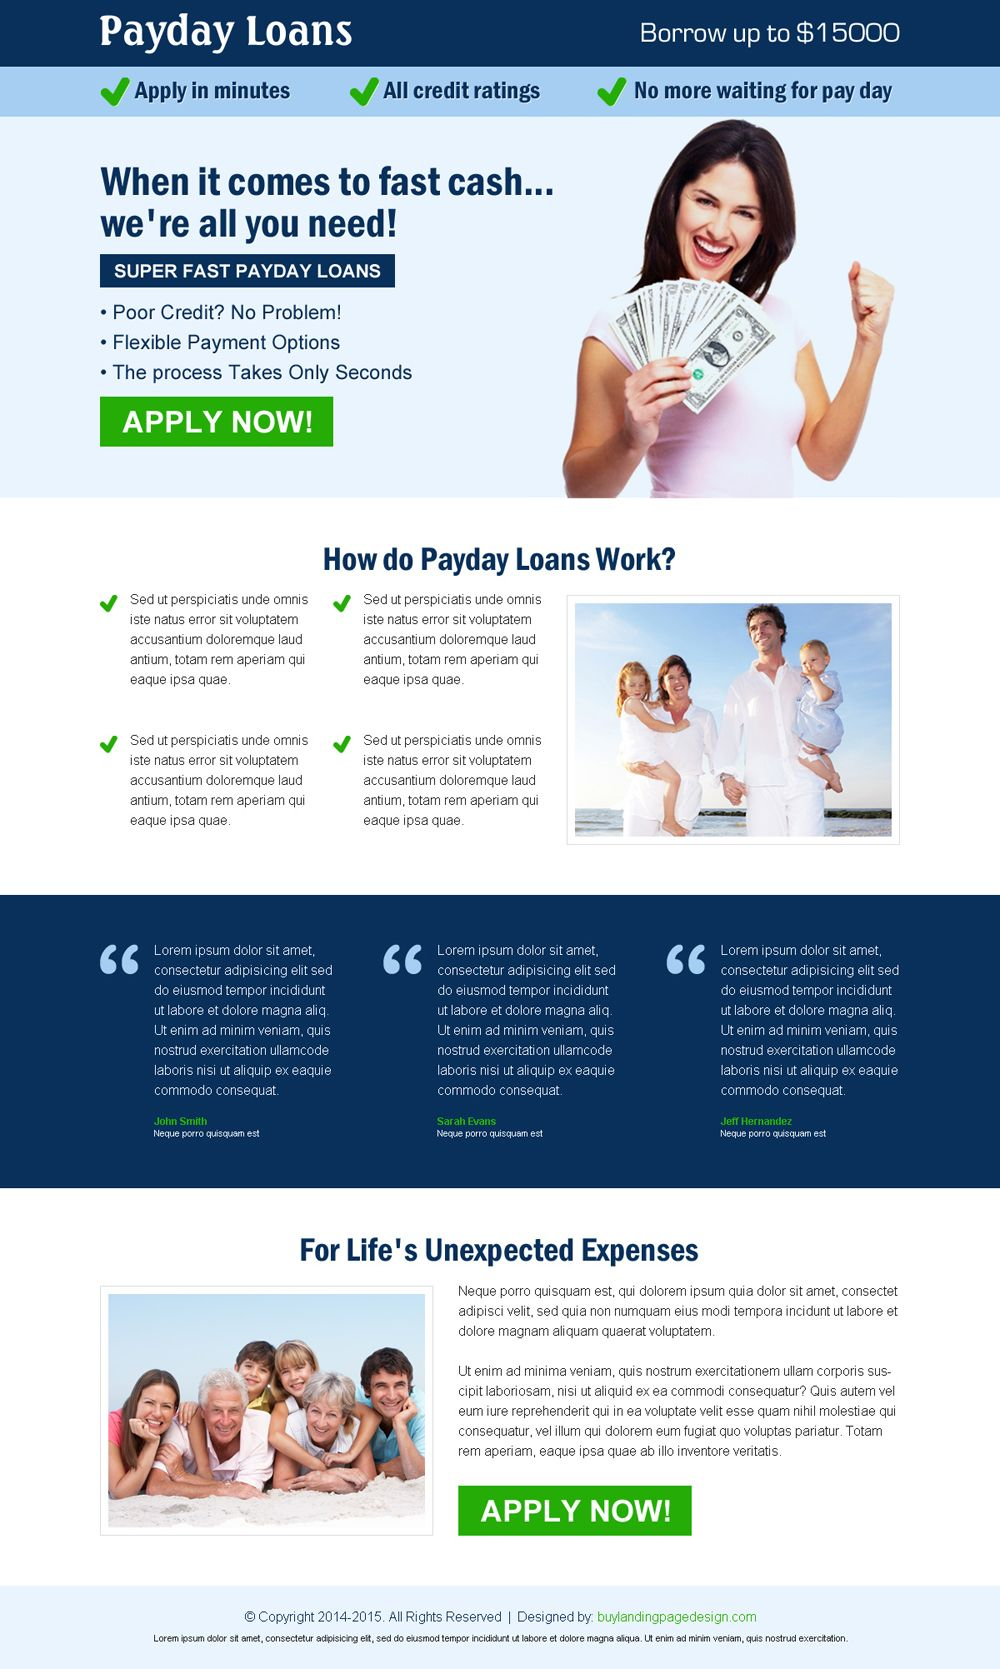 Quick Payday Loans >> Super Fast Payday Loan Apply Now Call To Action Landing Page